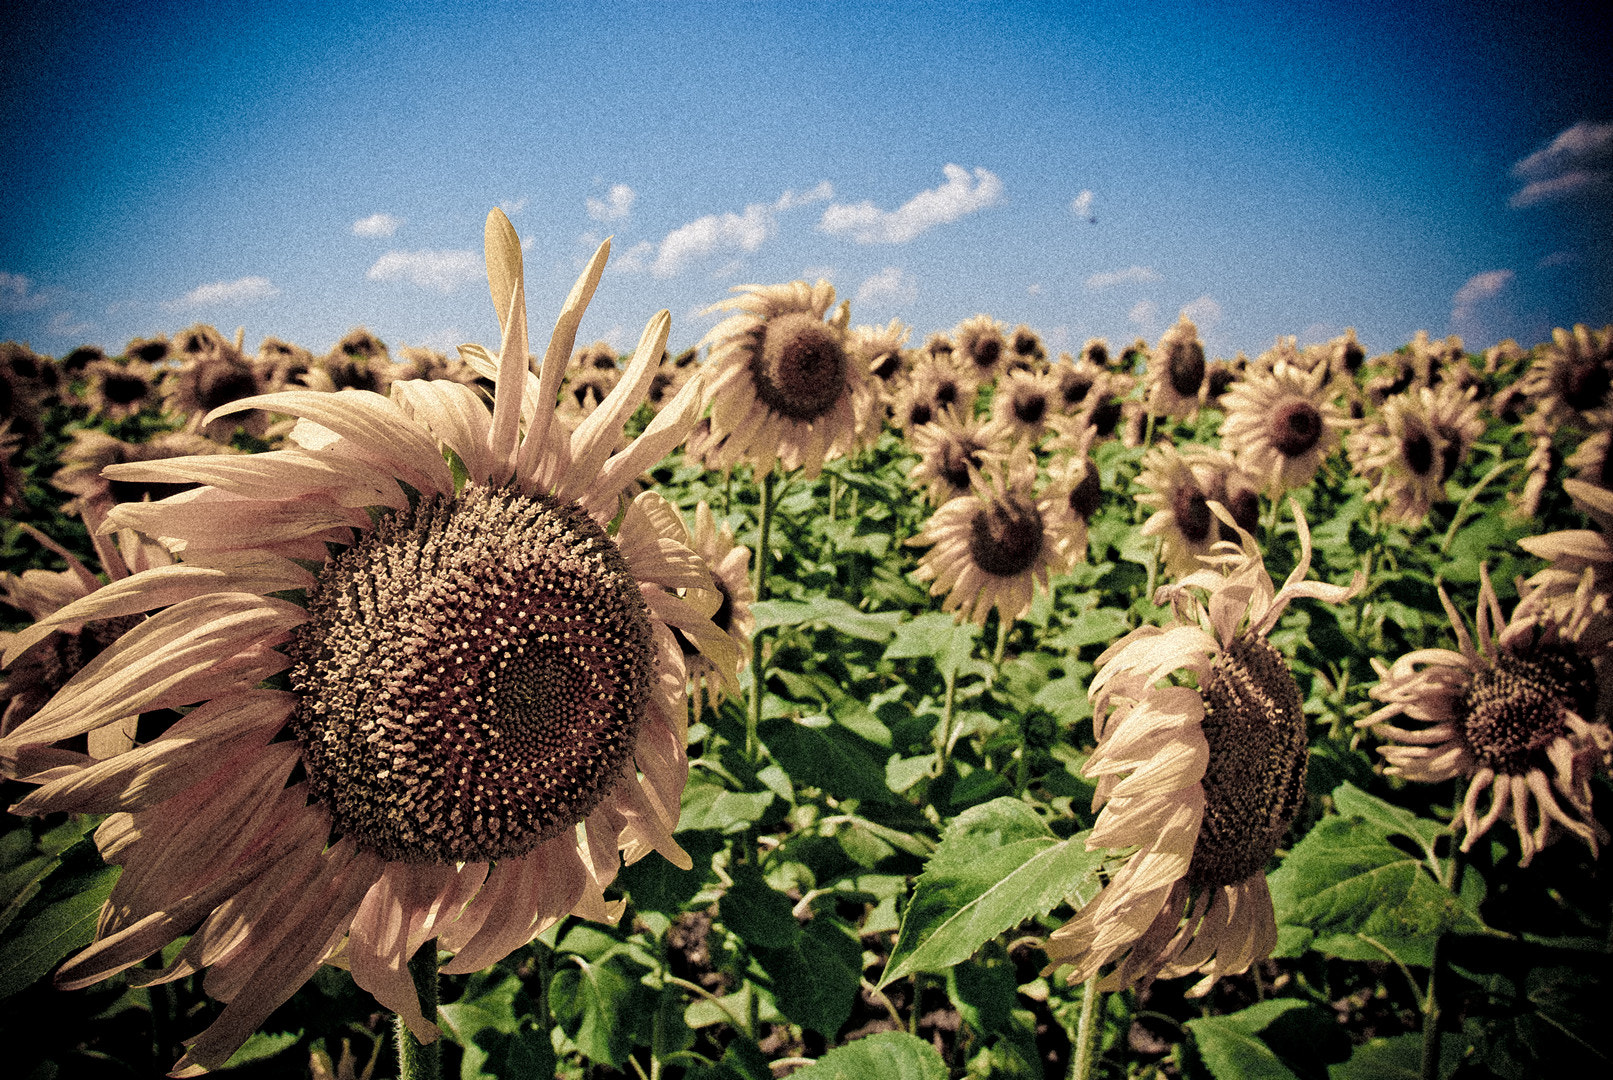 Photograph Sunflower 2-1 by S. S. on 500px